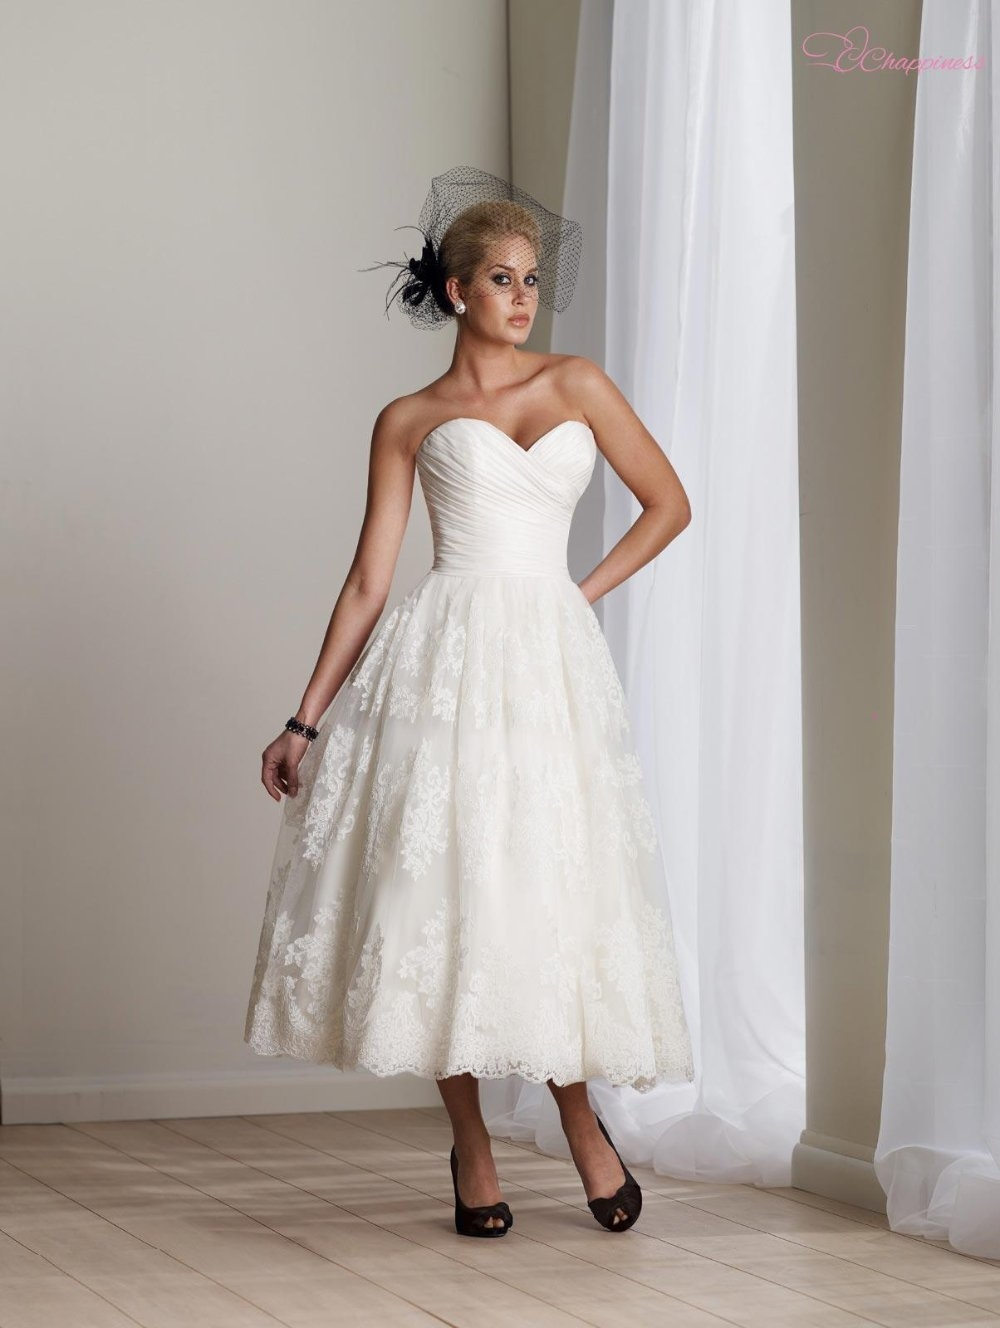 Short Ivory Strapless Wedding Dress Pictures Photos And Images For